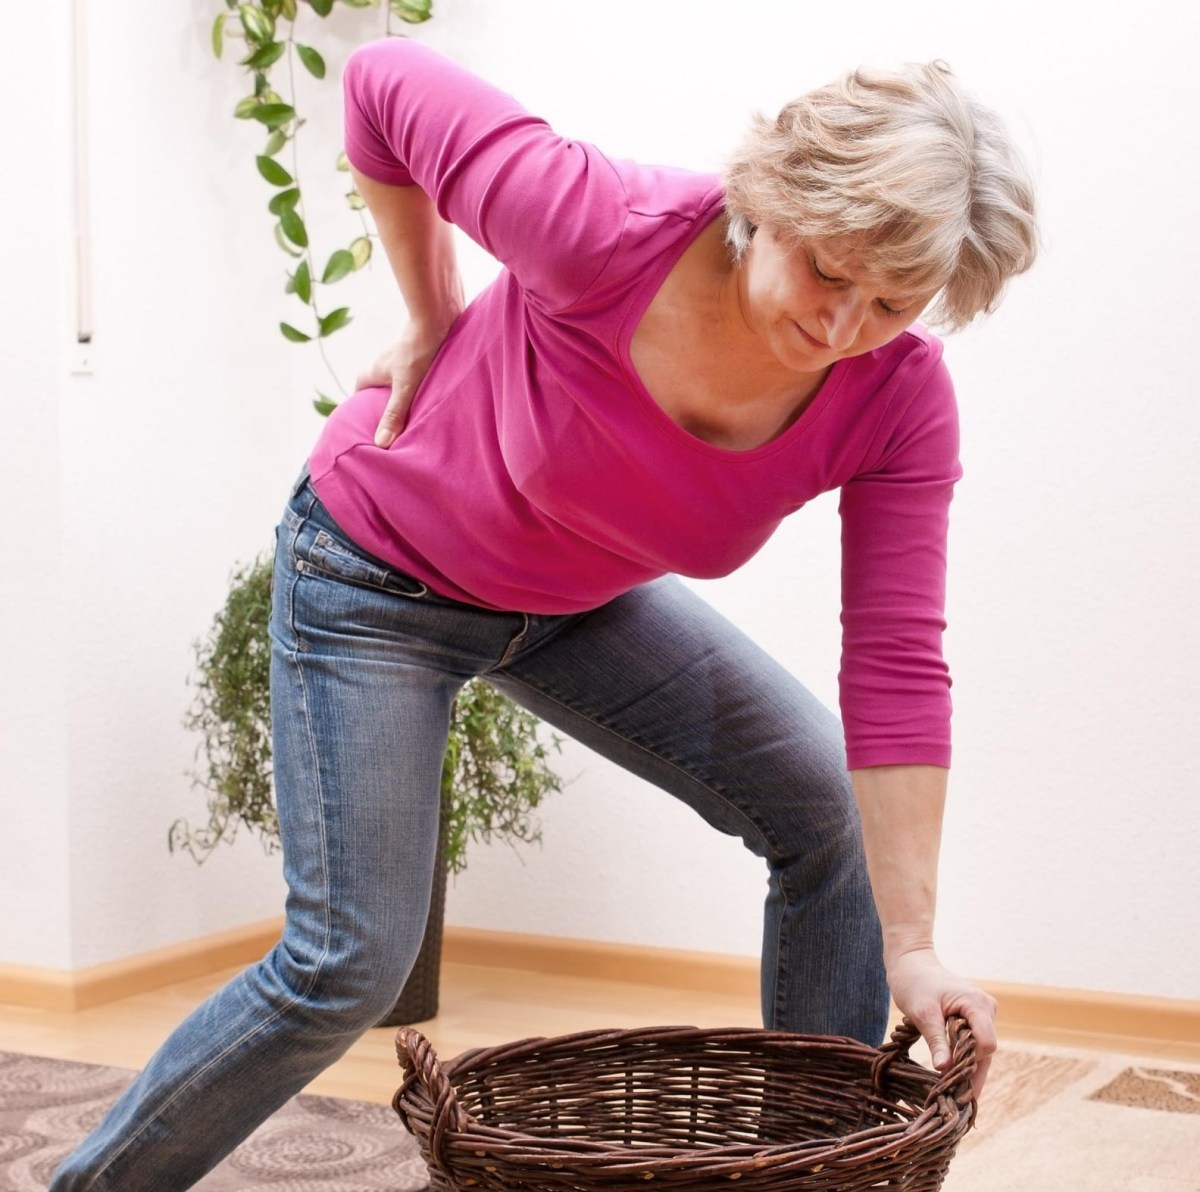 Best 4 Exercises to Prevent Decline with Age